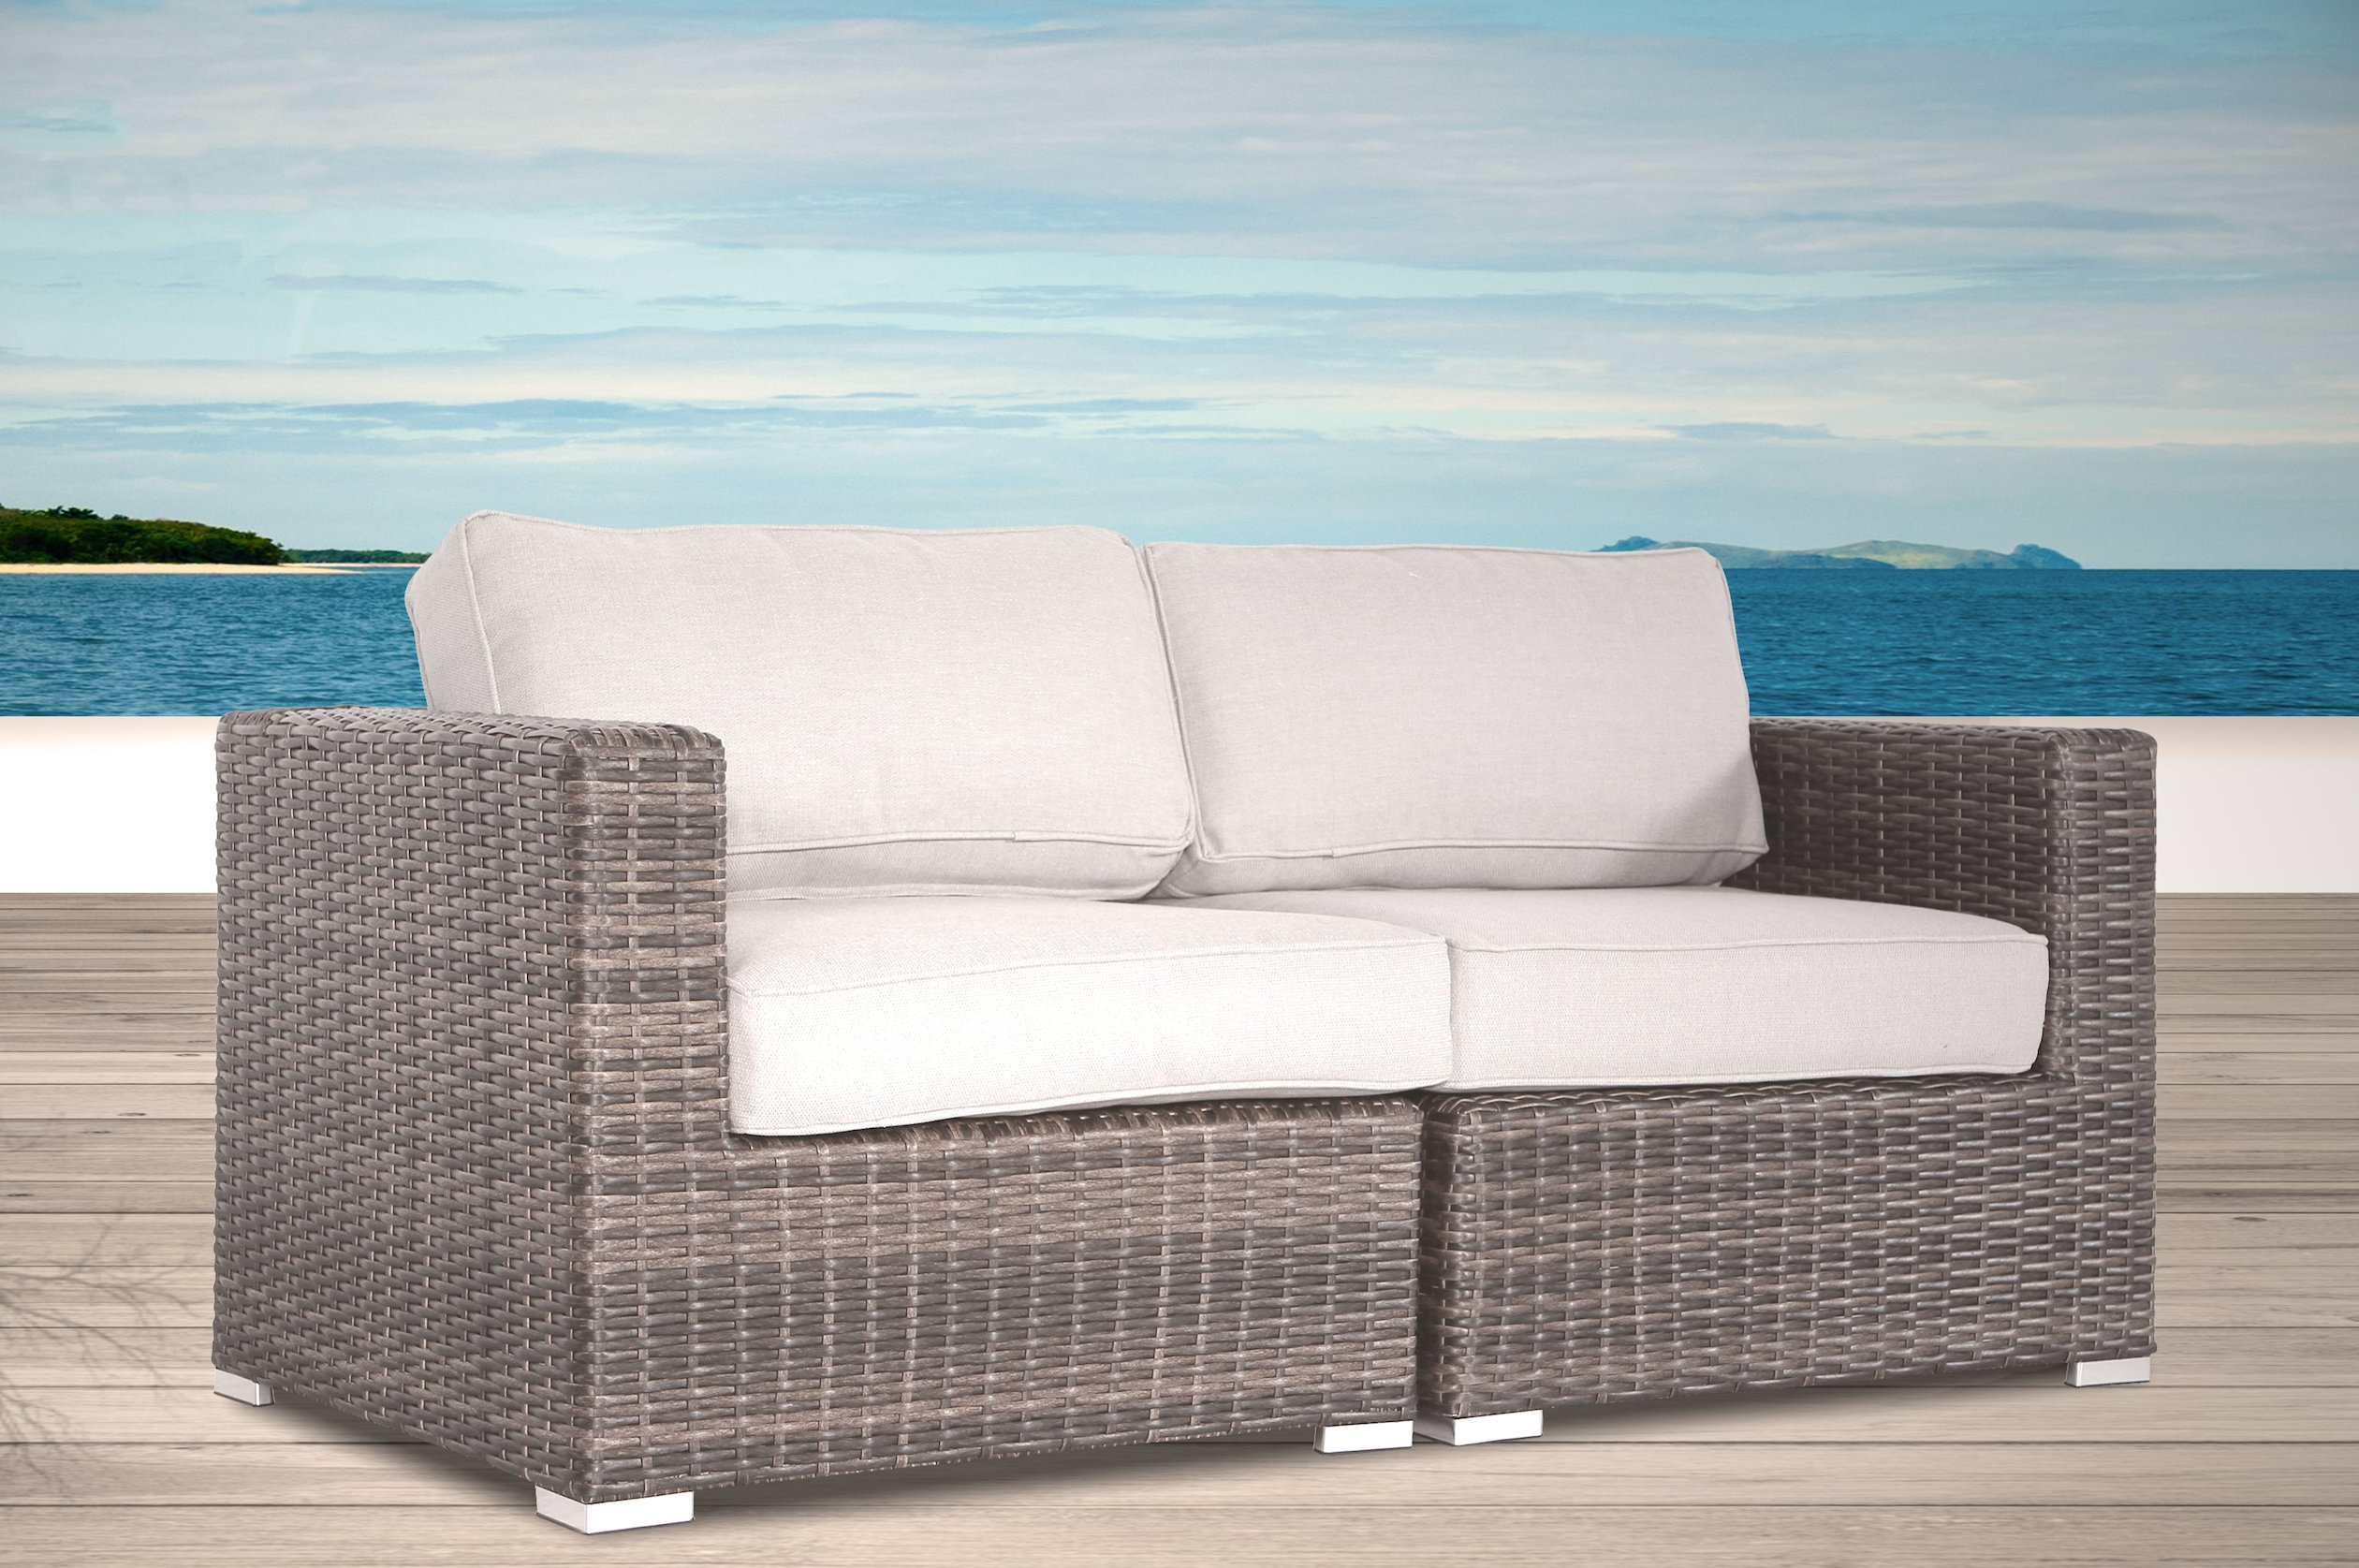 Beddingfield Loveseat With Cushions For Well Known Provencher Patio Loveseats With Cushions (View 3 of 20)